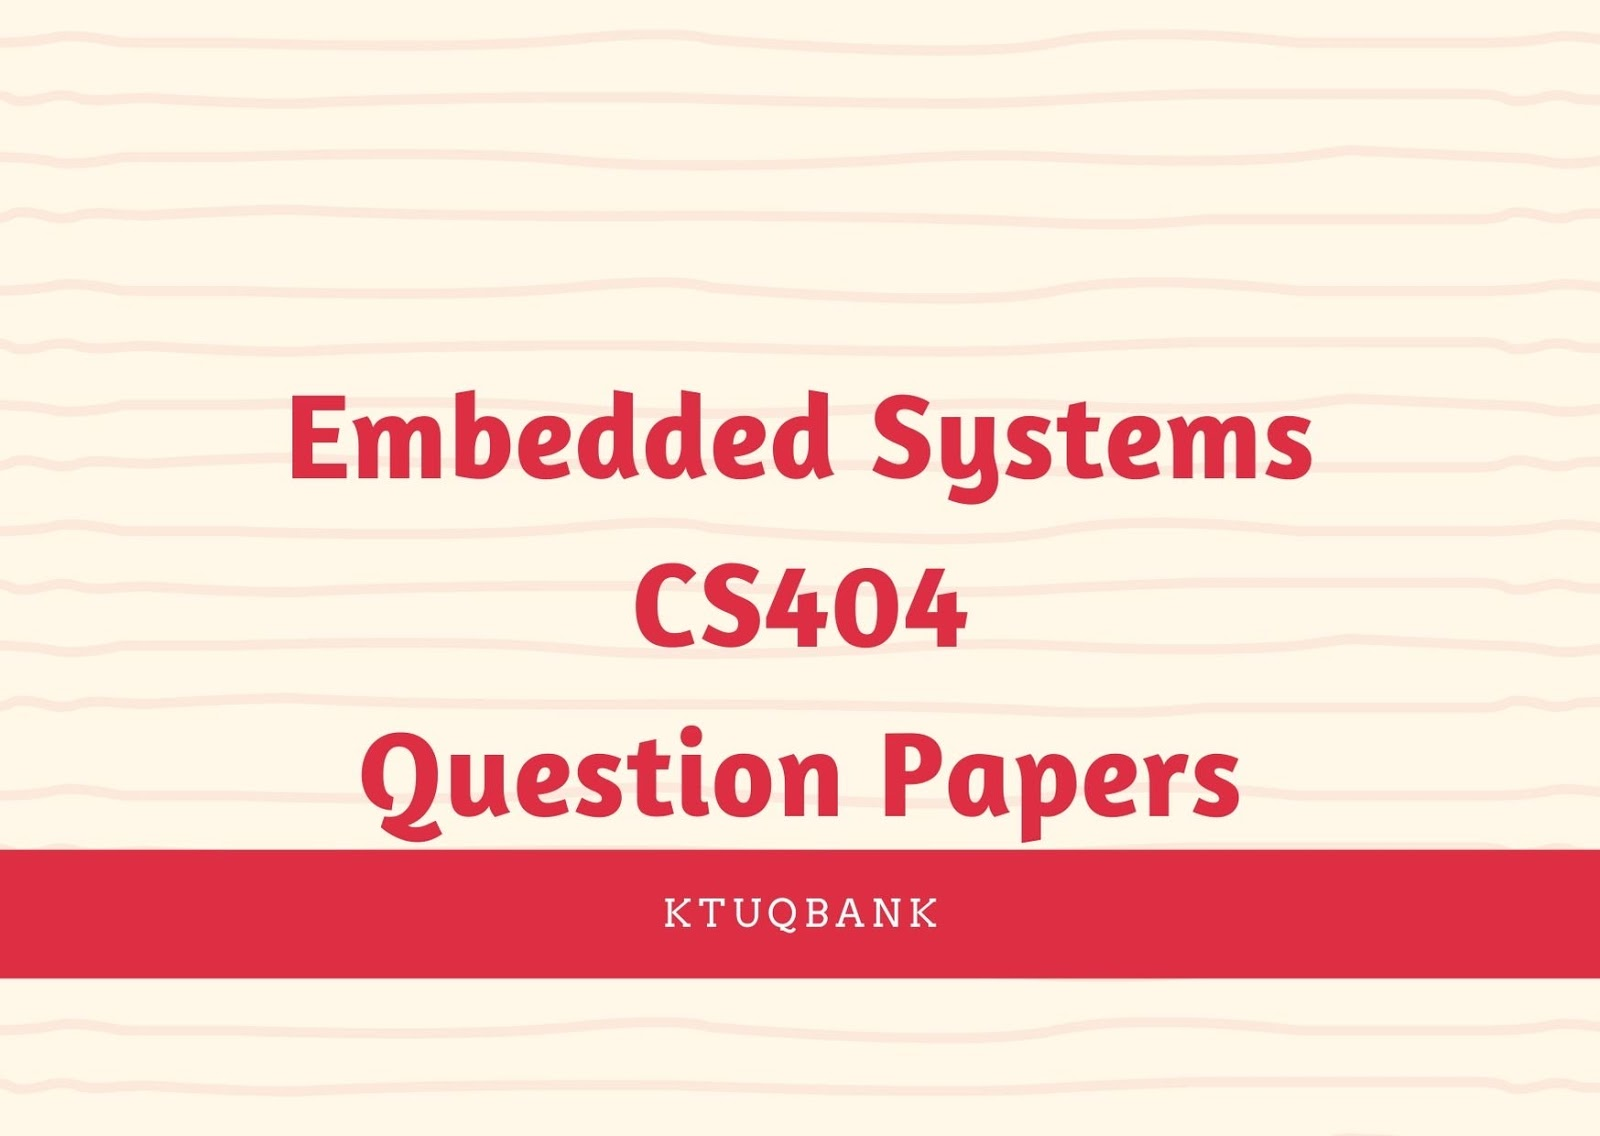 Embedded Systems | CS404 | Question Papers (2015 batch)